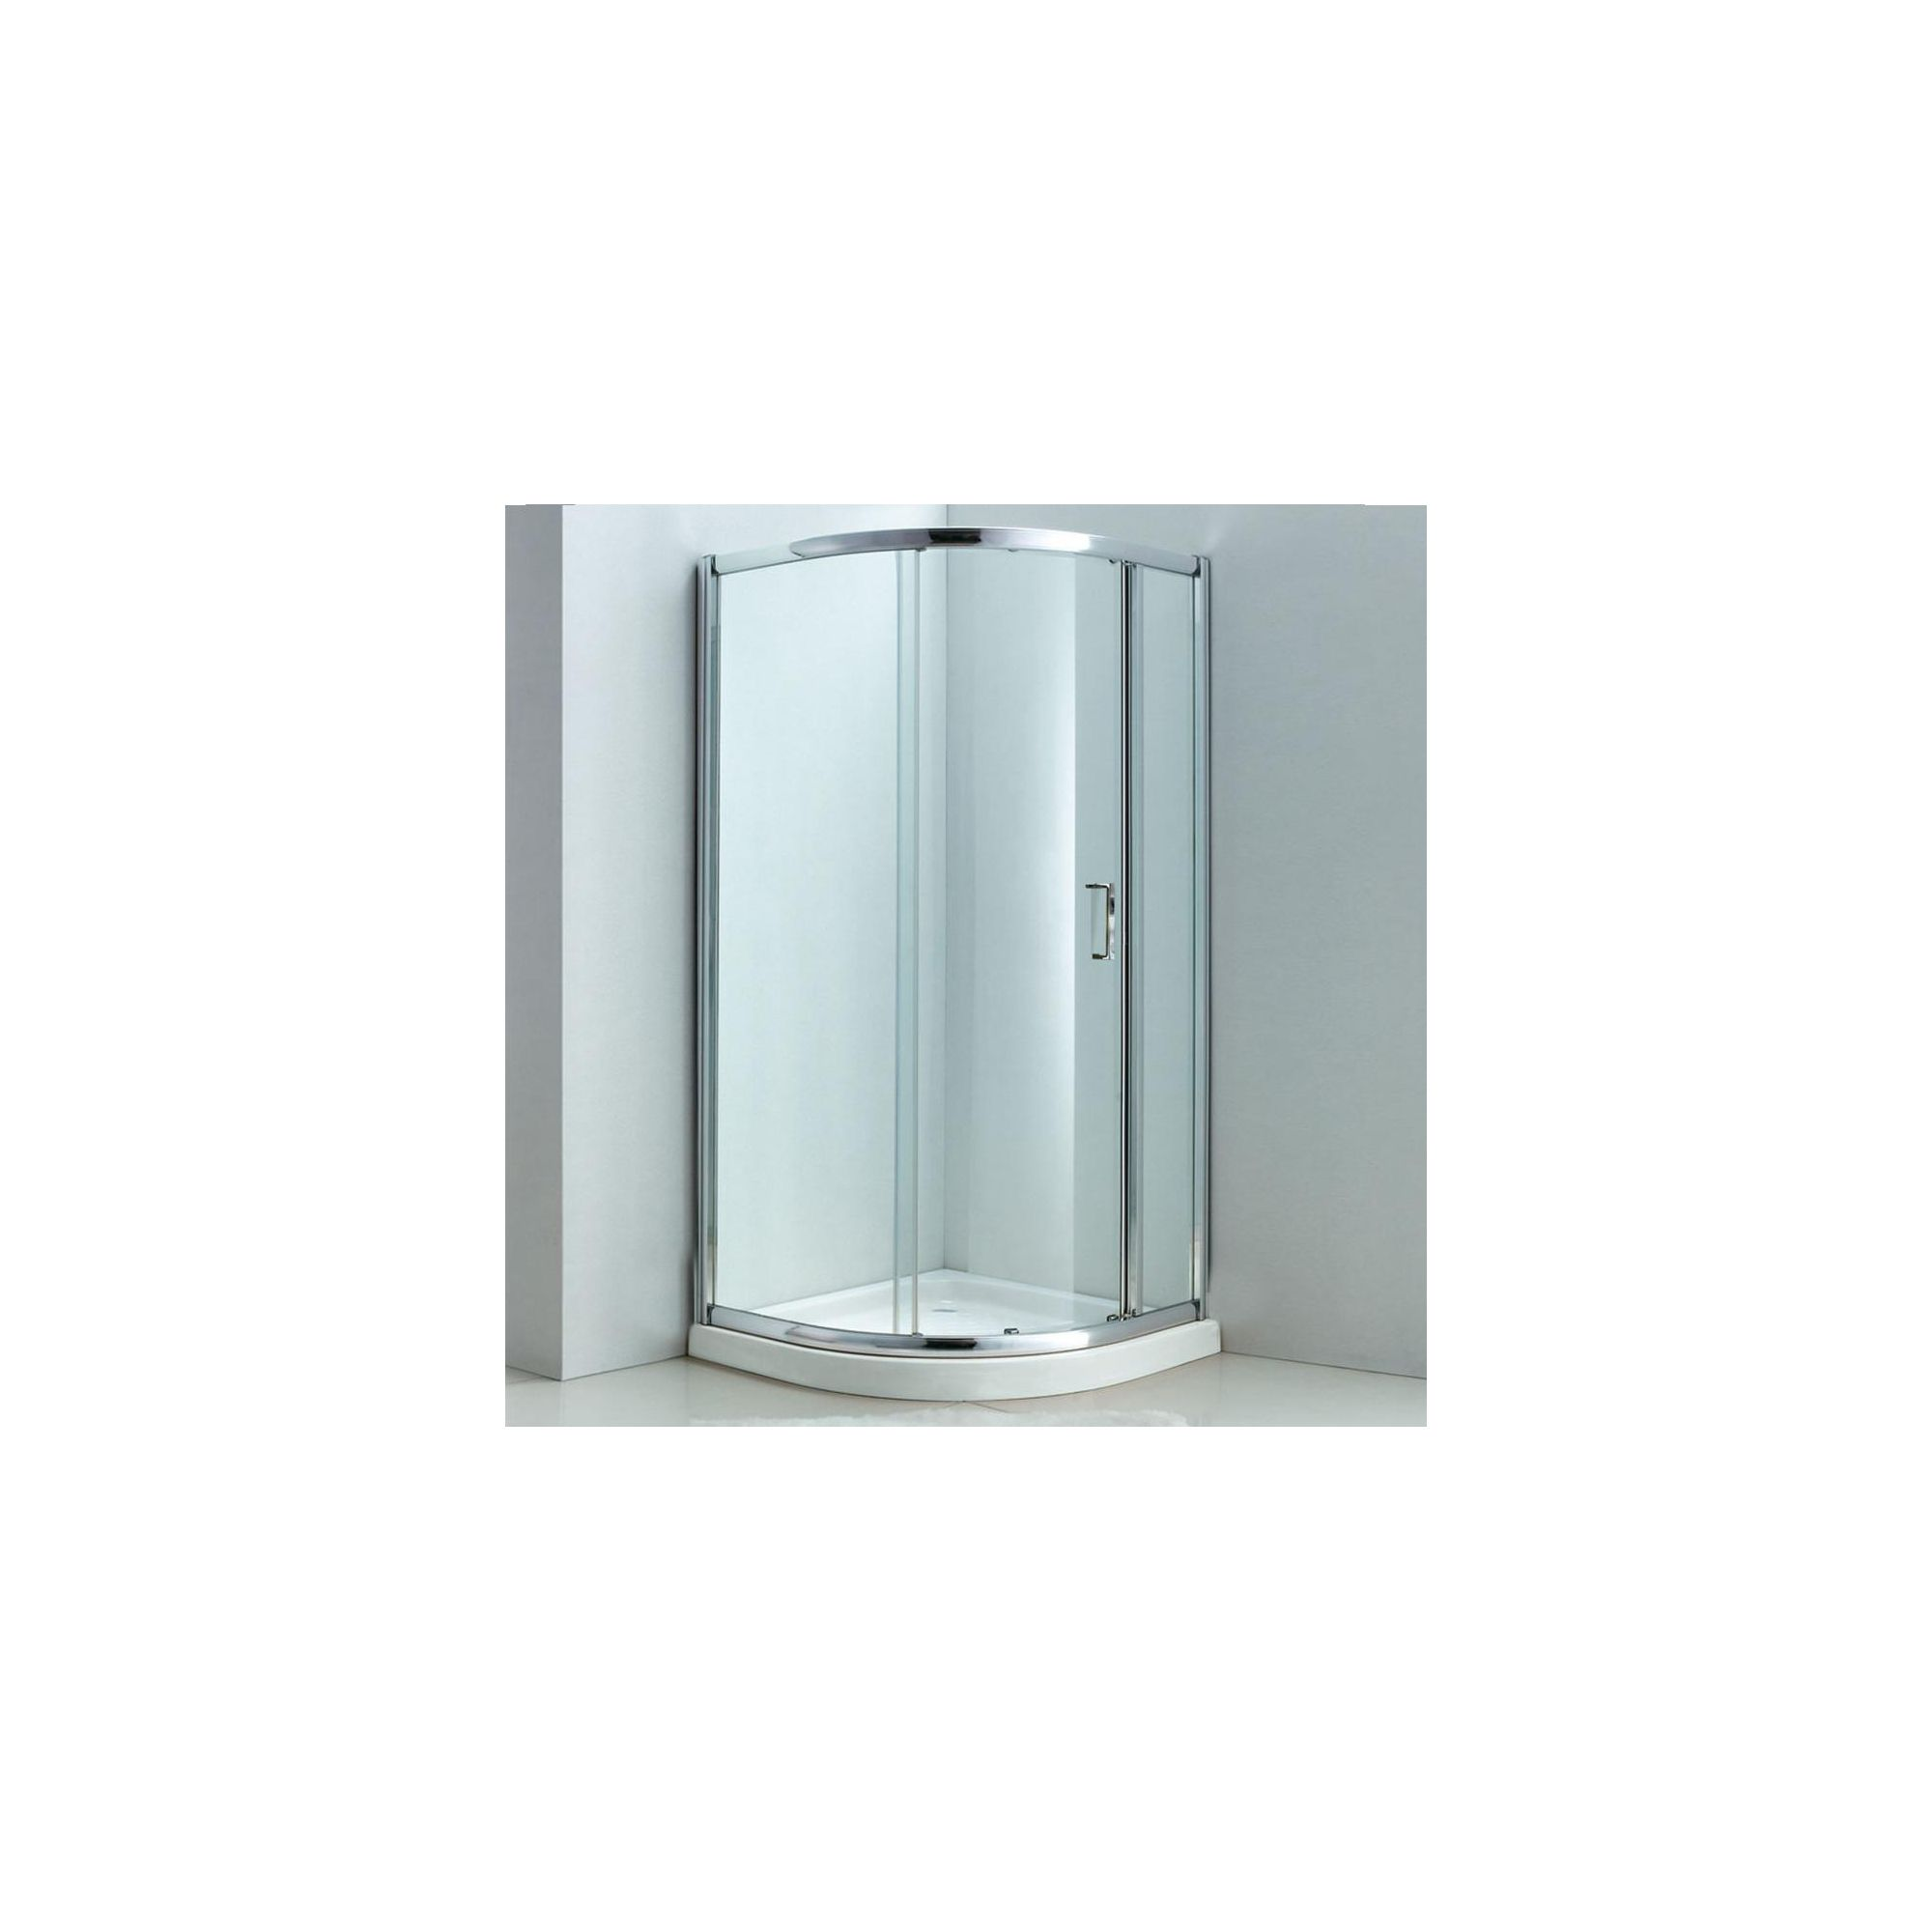 Duchy Style Single Offset Quadrant Shower Door, 1200mm x 800mm, 6mm Glass at Tesco Direct